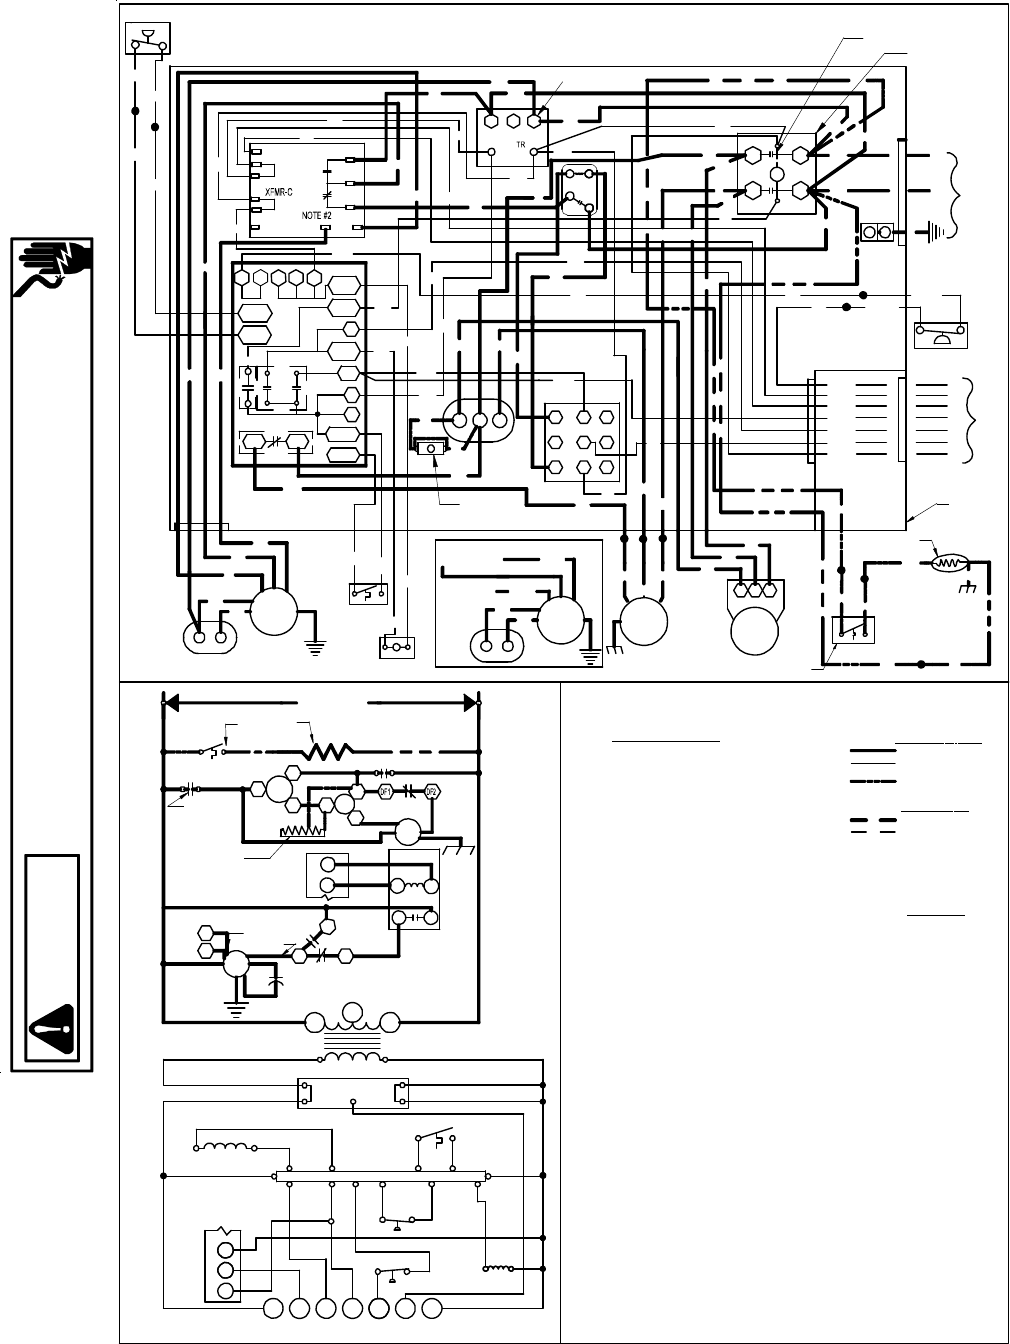 page 27 of goodman mfg heat pump rt6332013r1 user guide Goodman Gas Pack 56bd206b ab87 4a07 9374 260d441929a1 bg1b